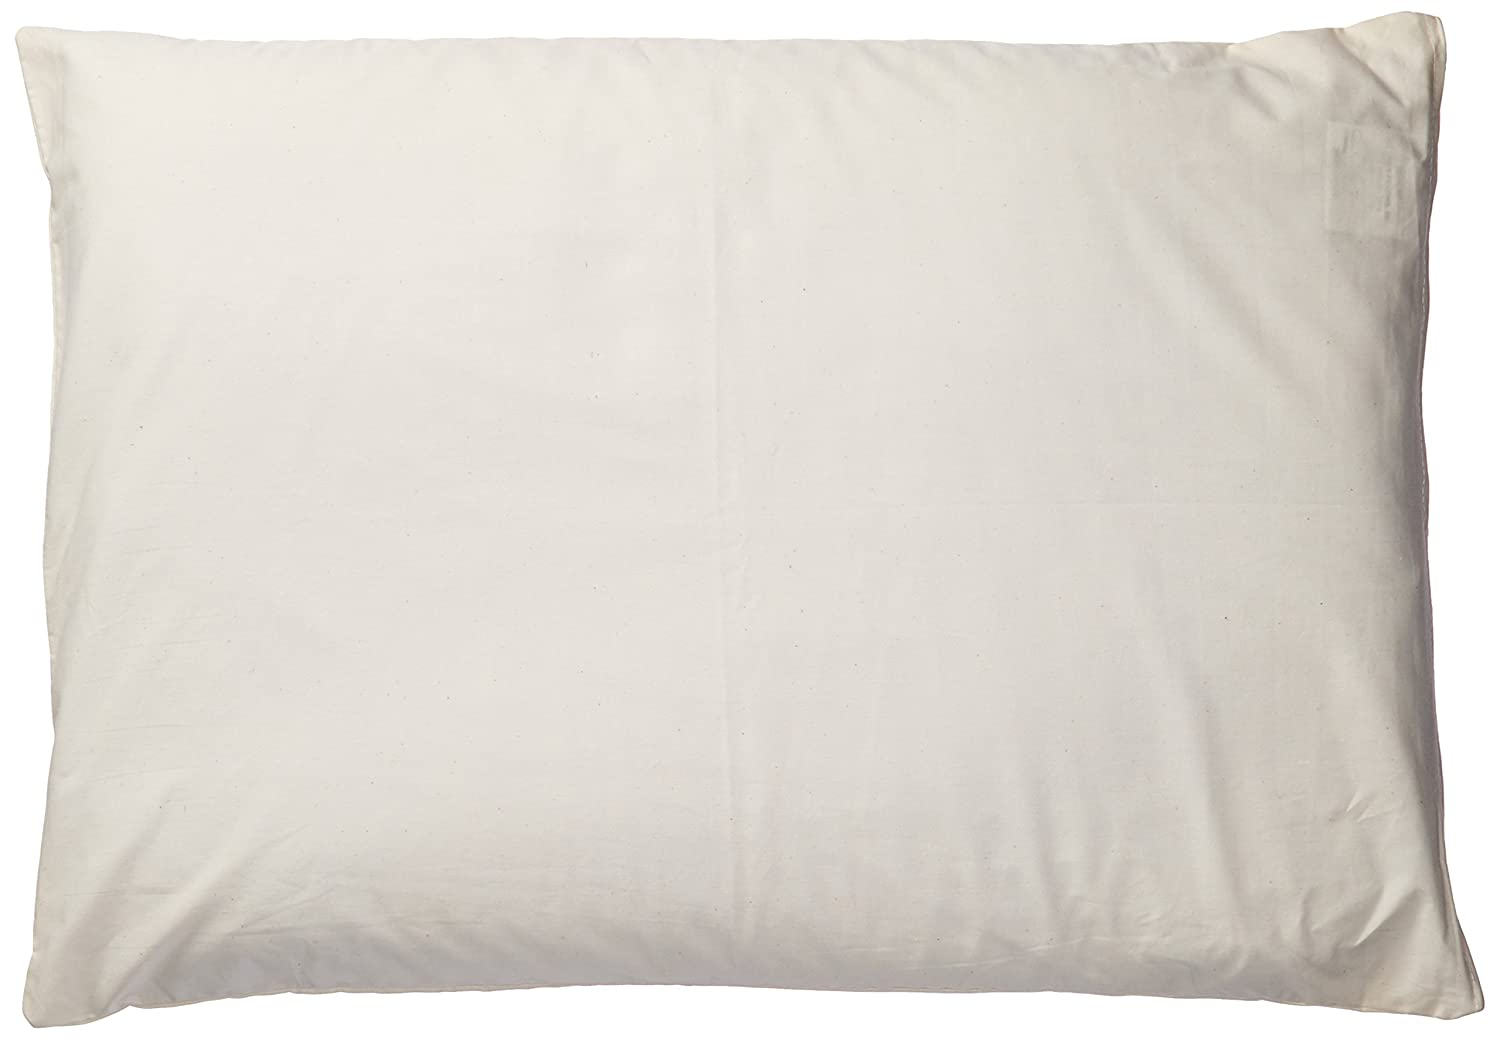 Natures Pillows NP-55000 Sobakawa Buckwheat Pillow with Free Pillow Protective Cover, Standard Size, 15 x 20 Inc.